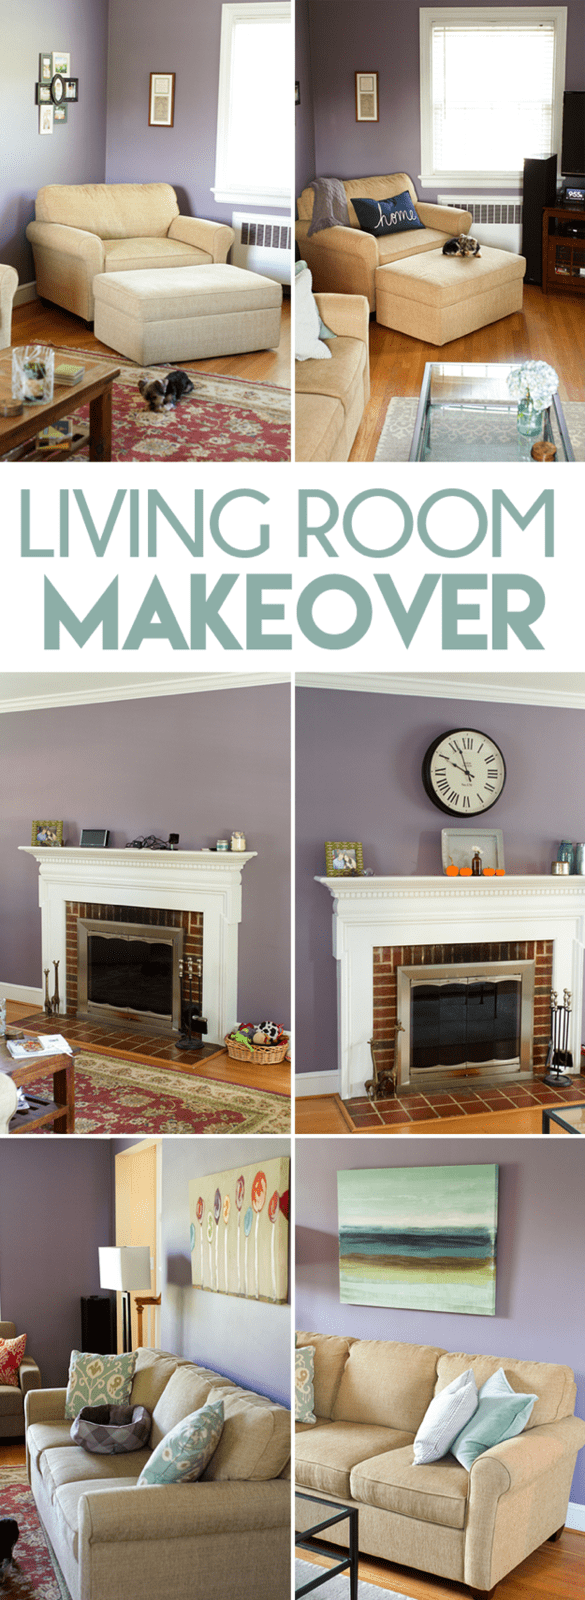 Joanna Gaines Inspired Living Room Updates